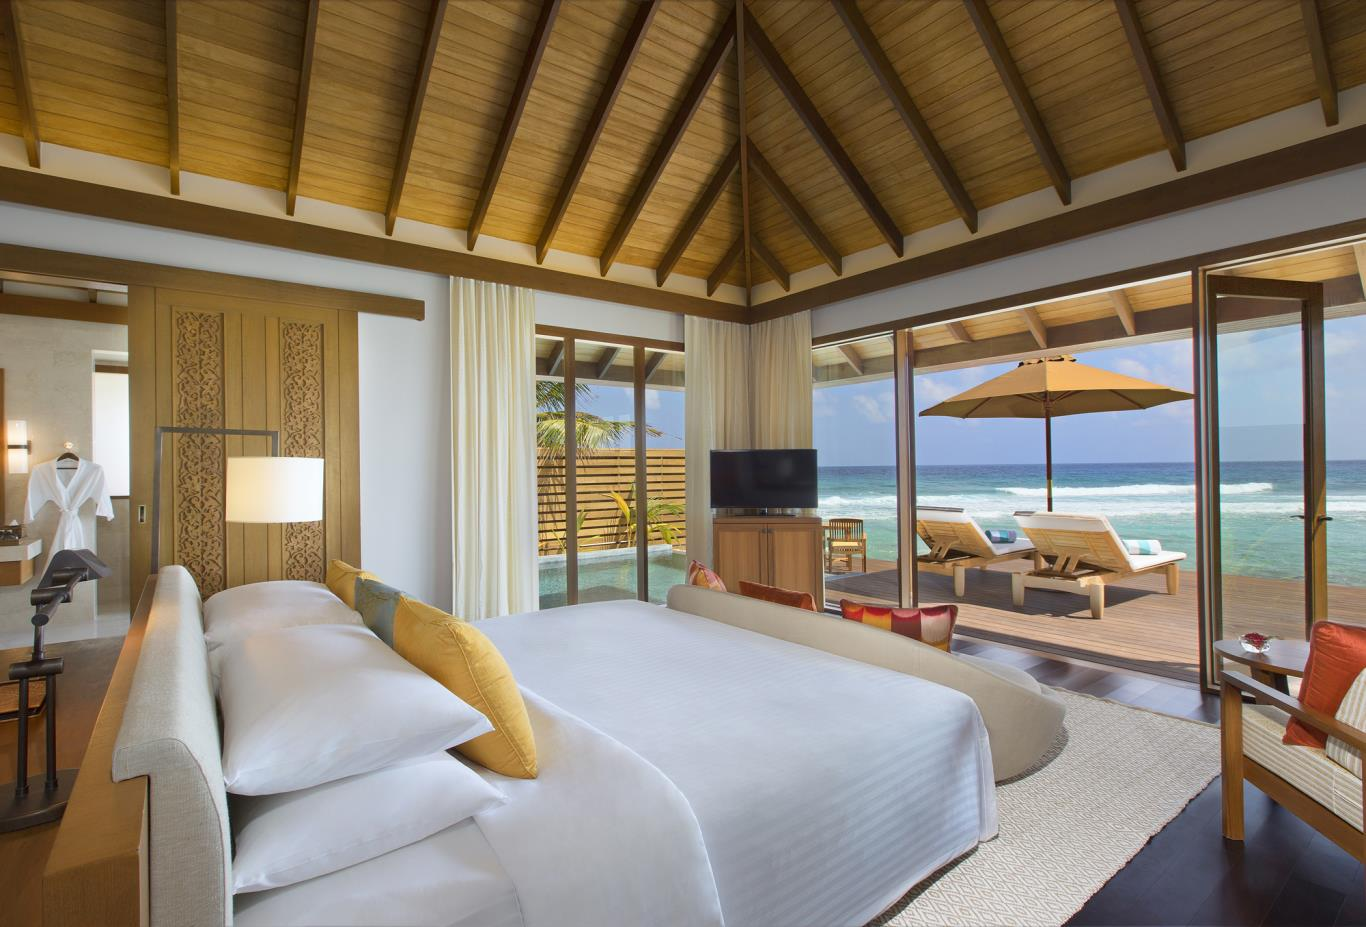 Ocean Pool Bungalow Bedroom View